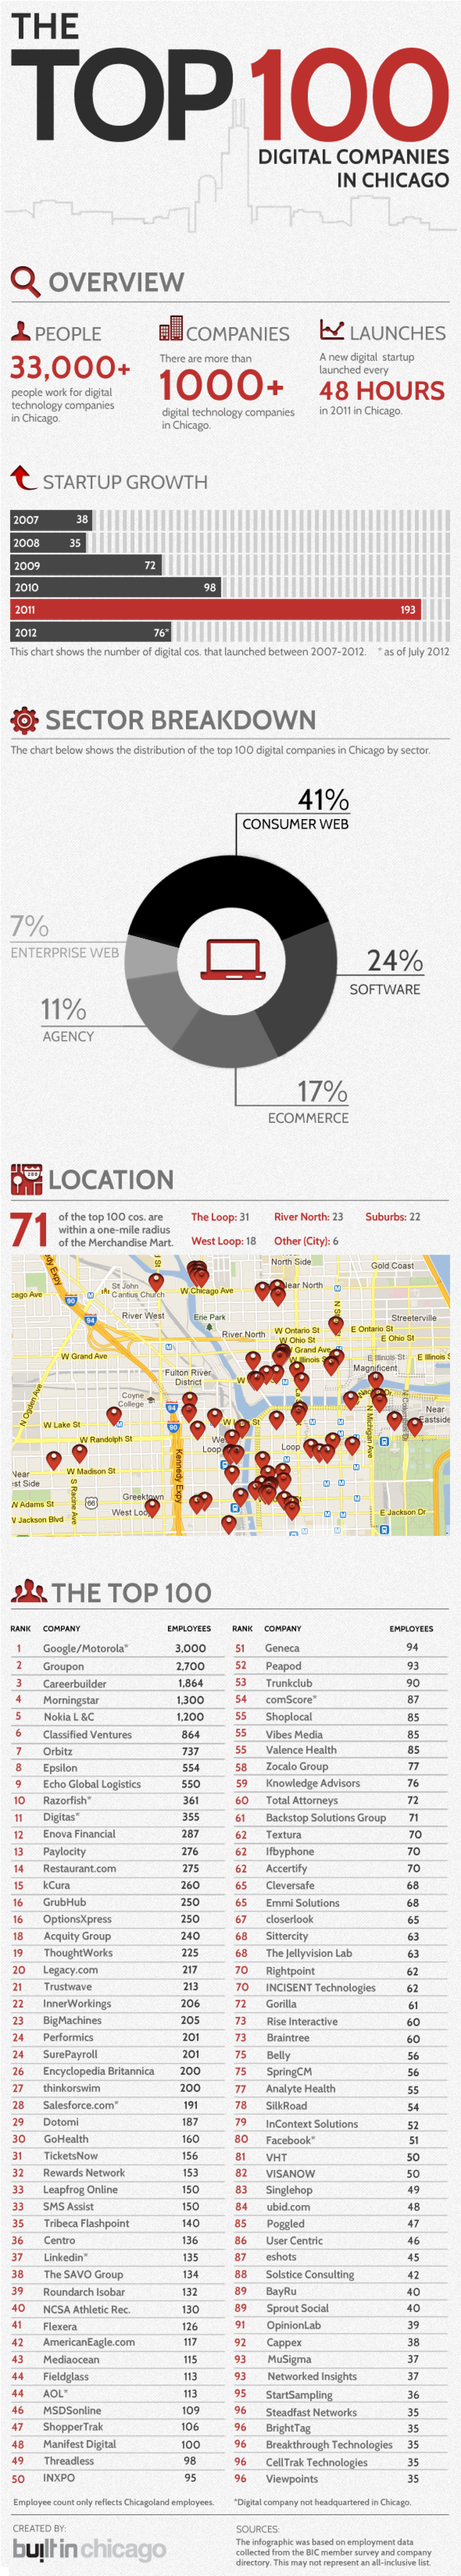 The Top 100 Digital Companies in Chicago Infographic